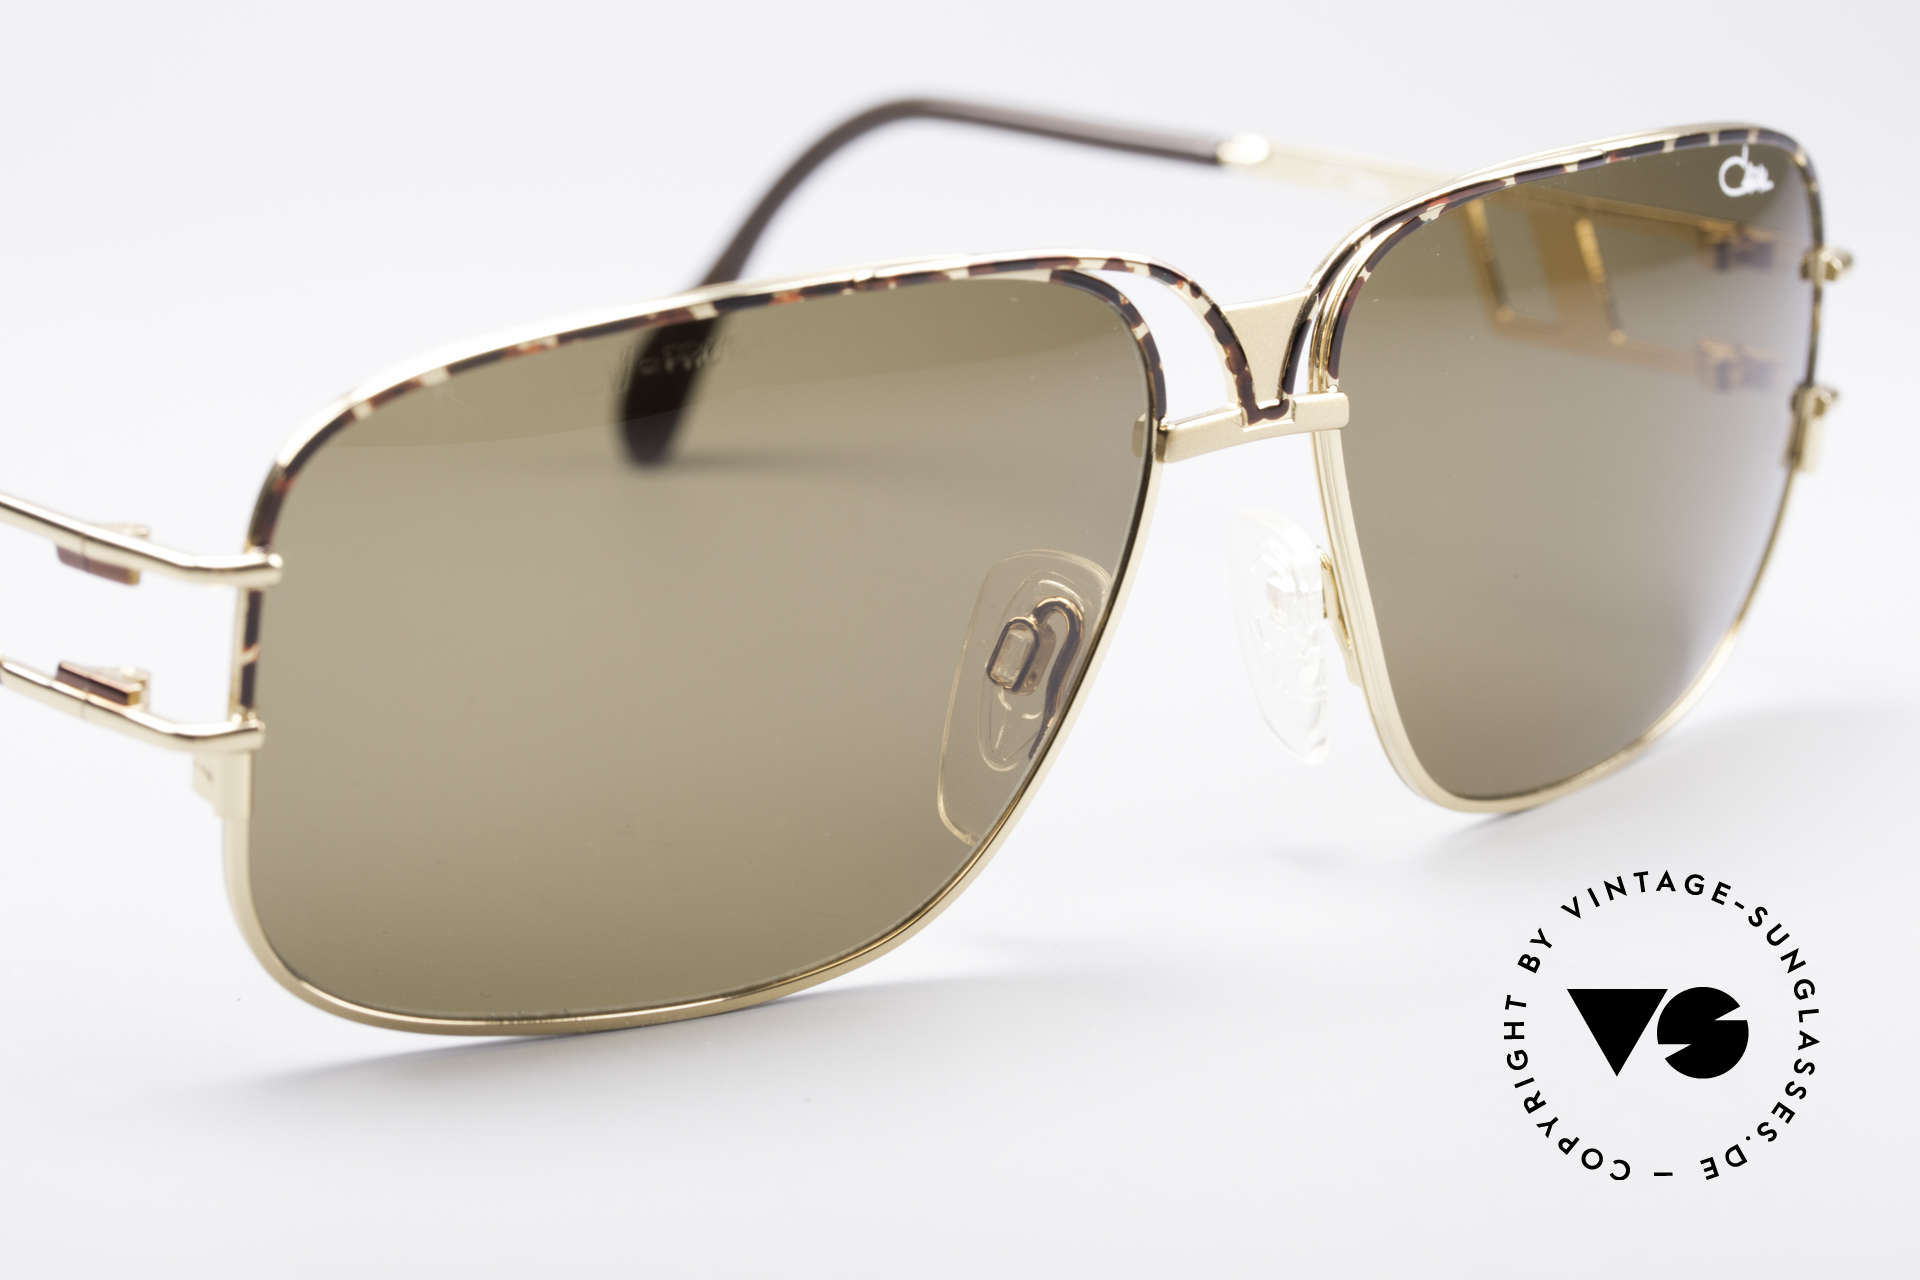 Cazal 971 Ultra Rare Designer Shades, a 'Must have' for all lovers of quality, fashion and design!, Made for Men